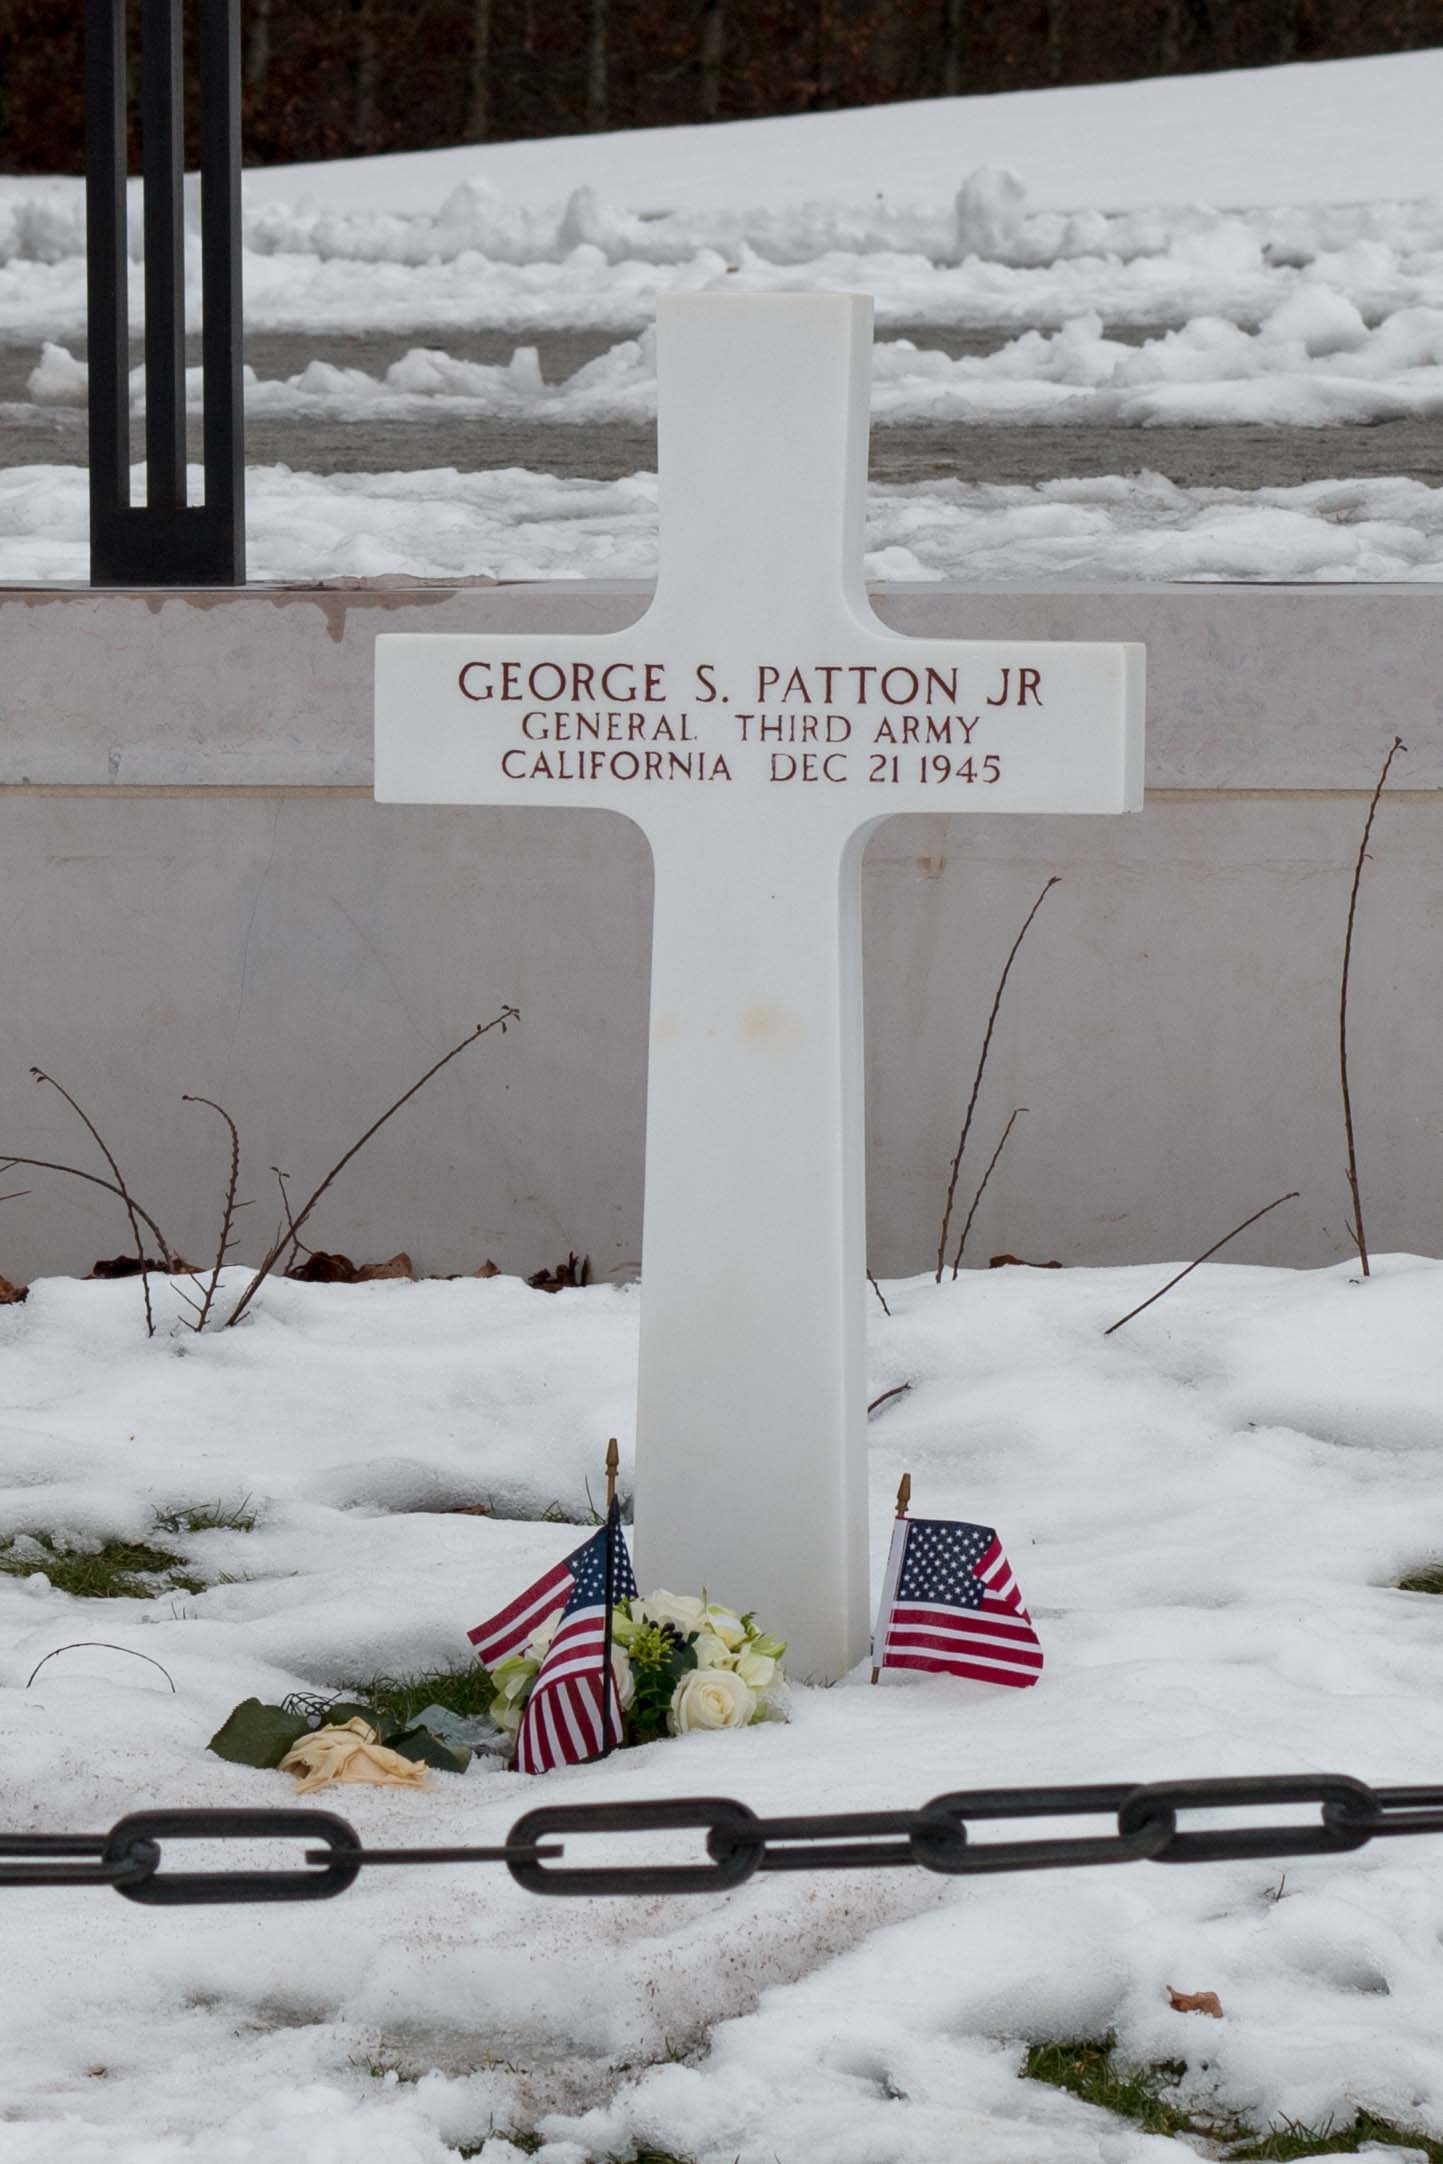 The headstone of General Patton